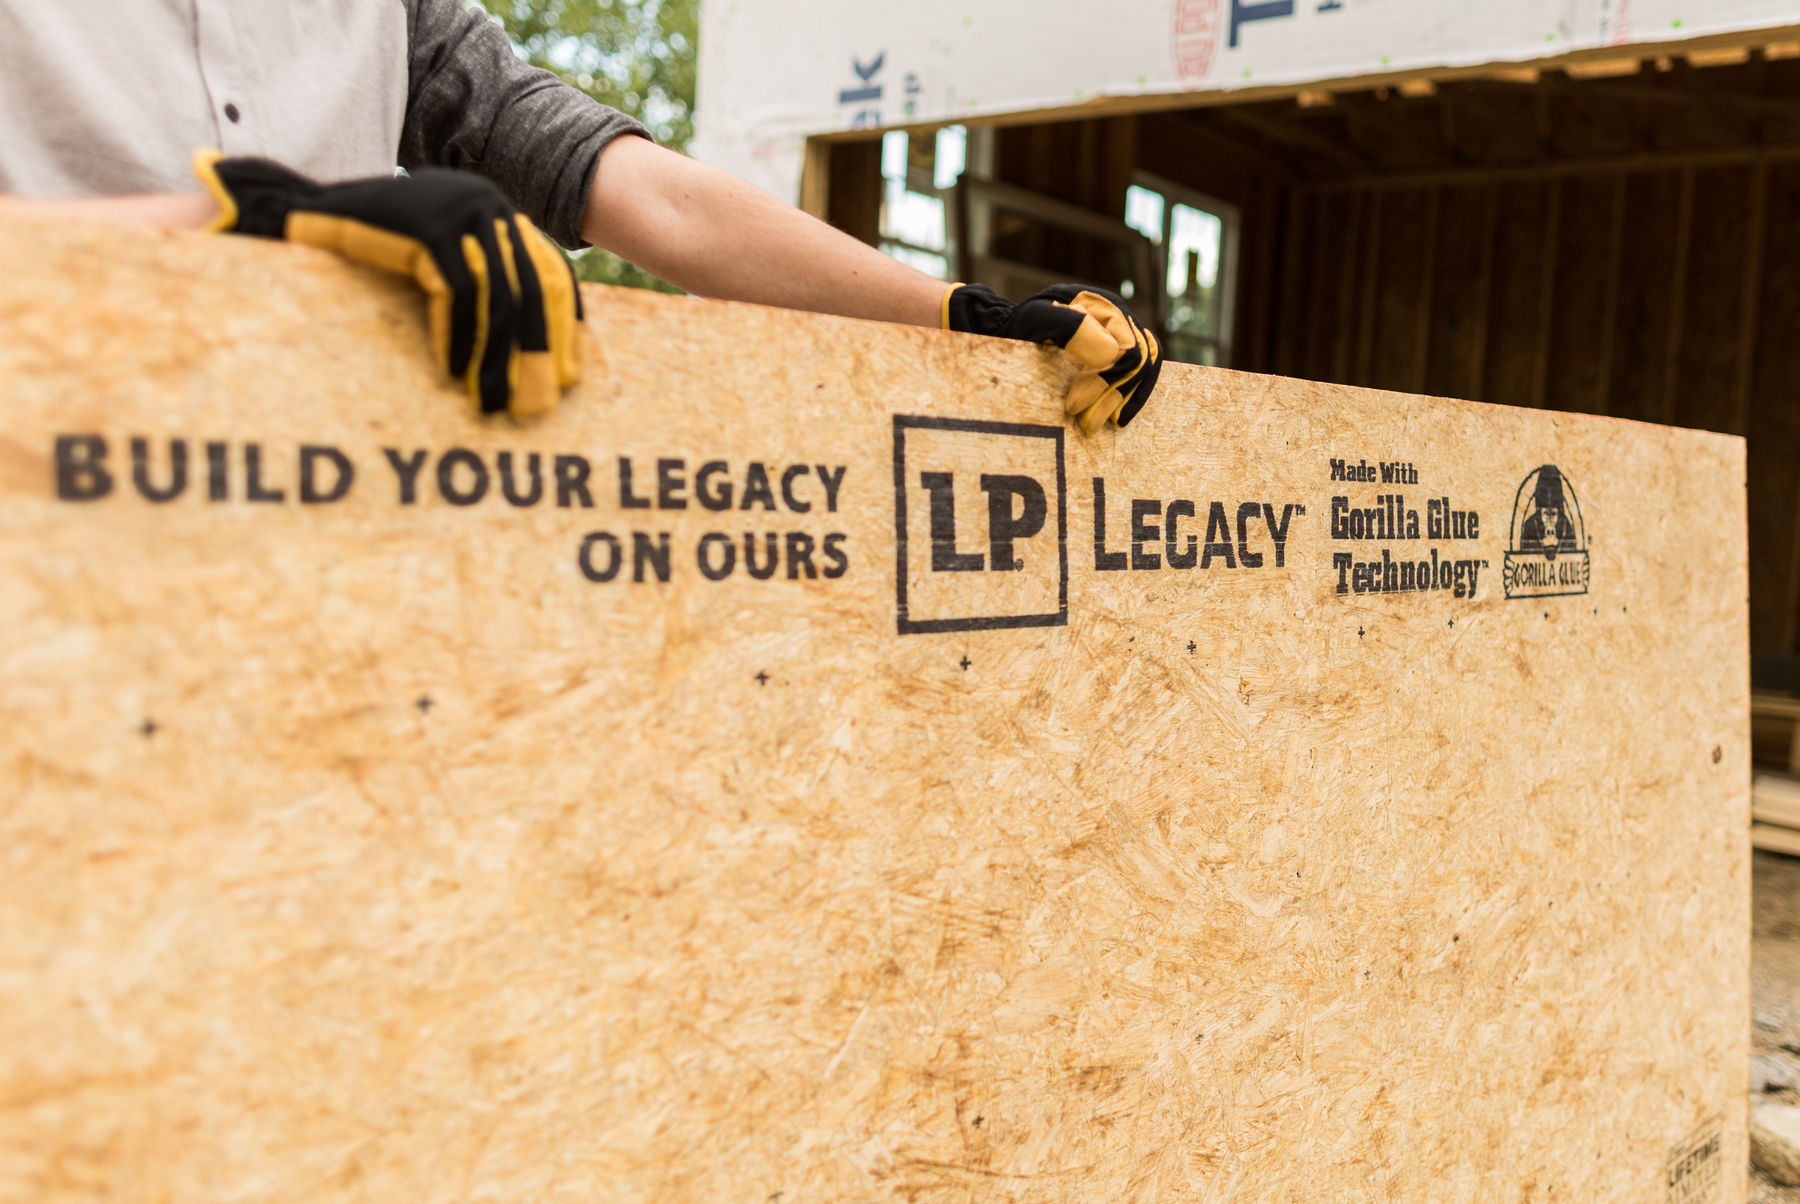 Lp Legacy 174 Sub Flooring For Strength And Stiffness In